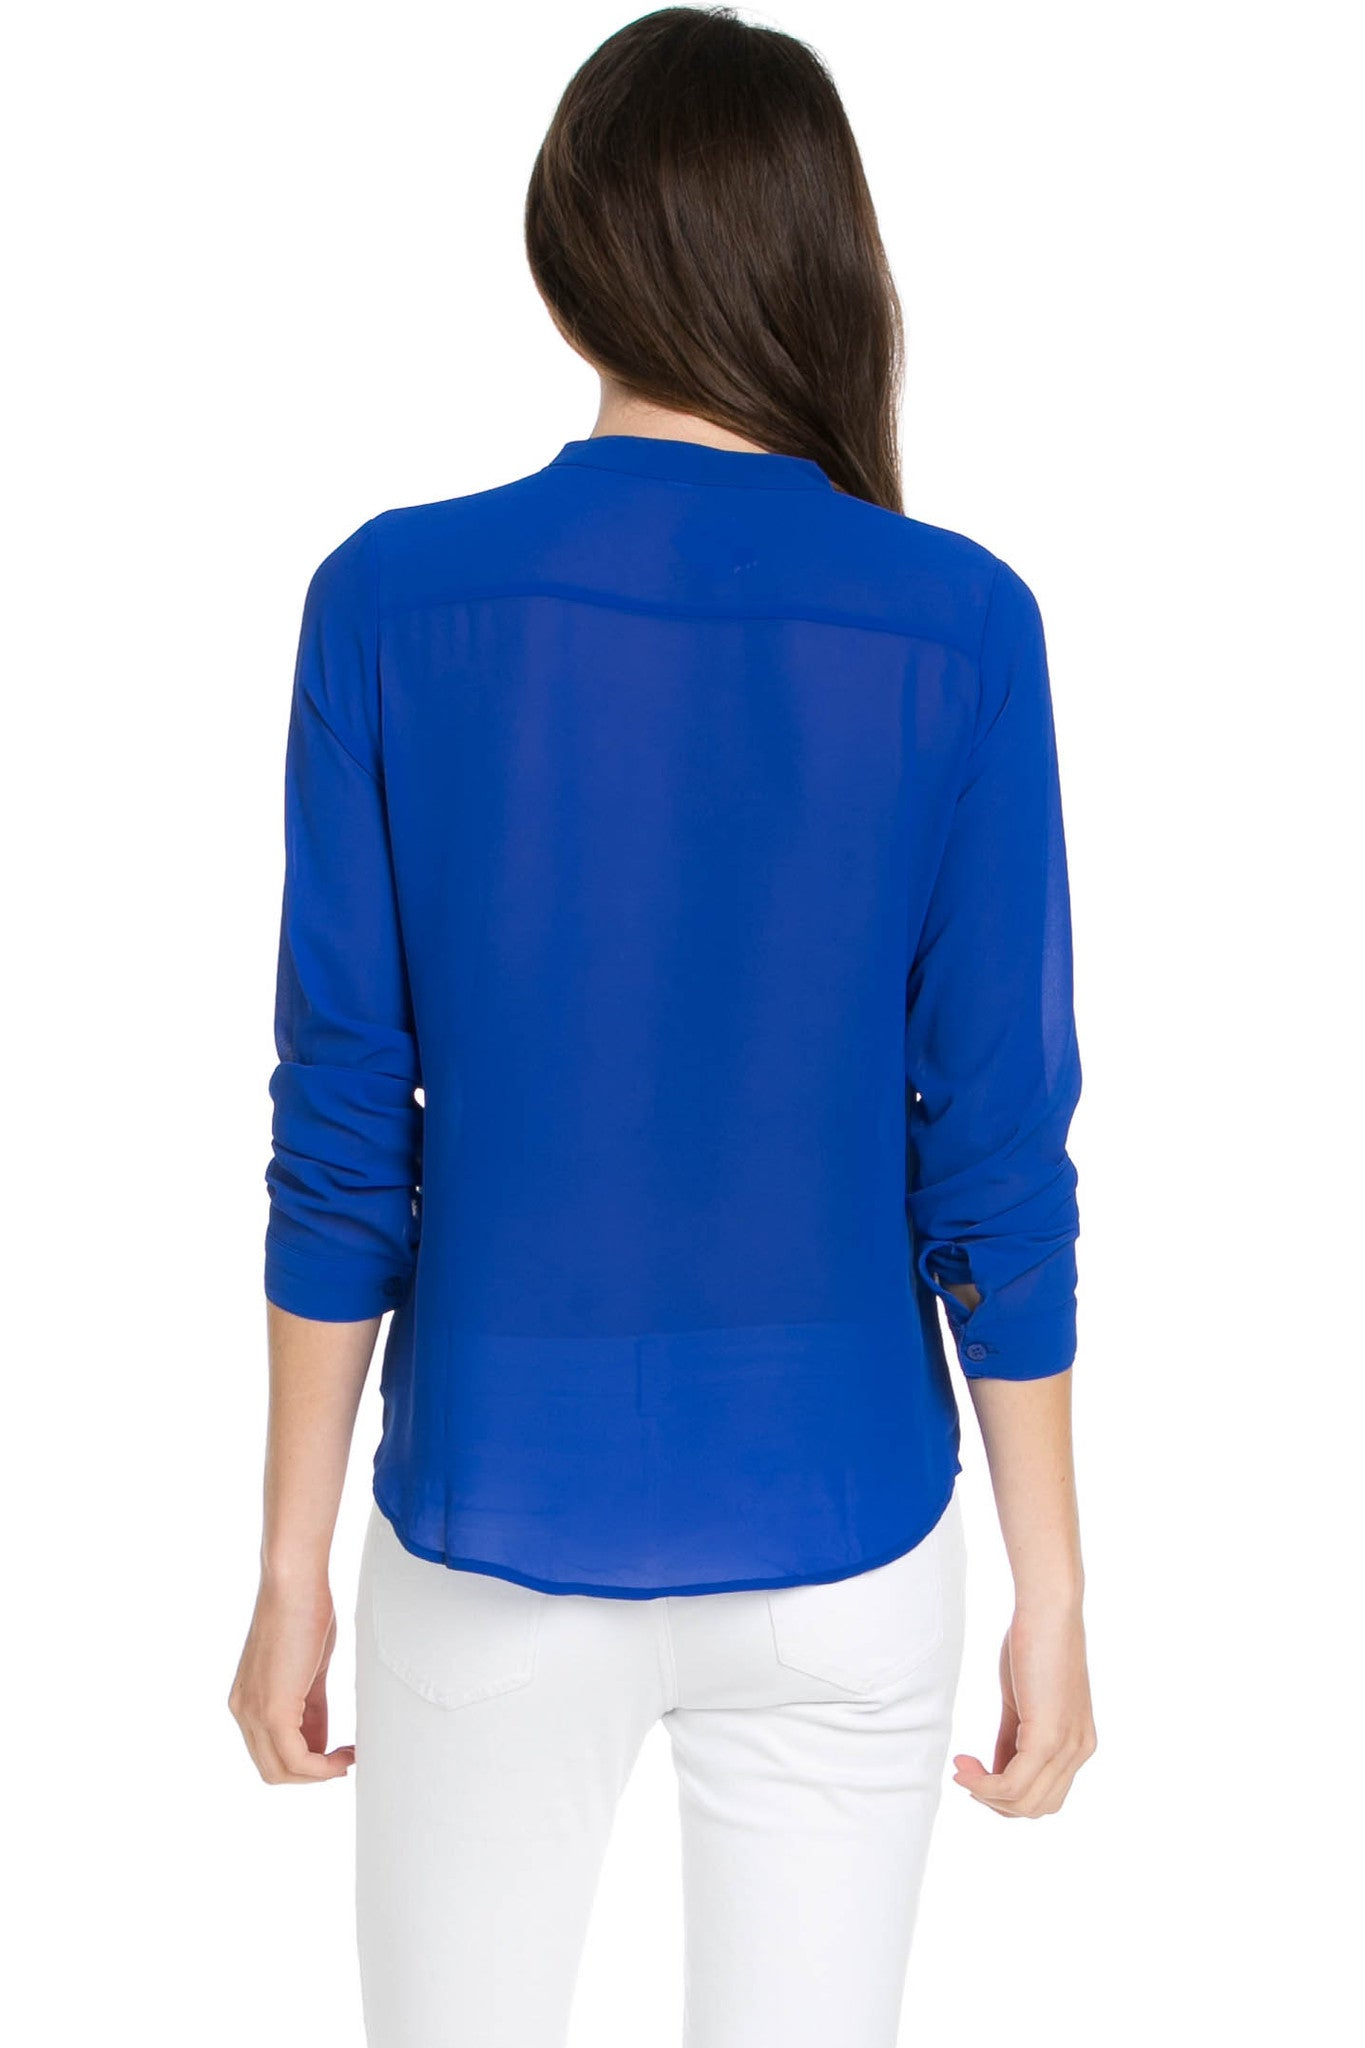 V-Neck Chiffon Blouse Dazzling Blue - Tops - My Yuccie - 3